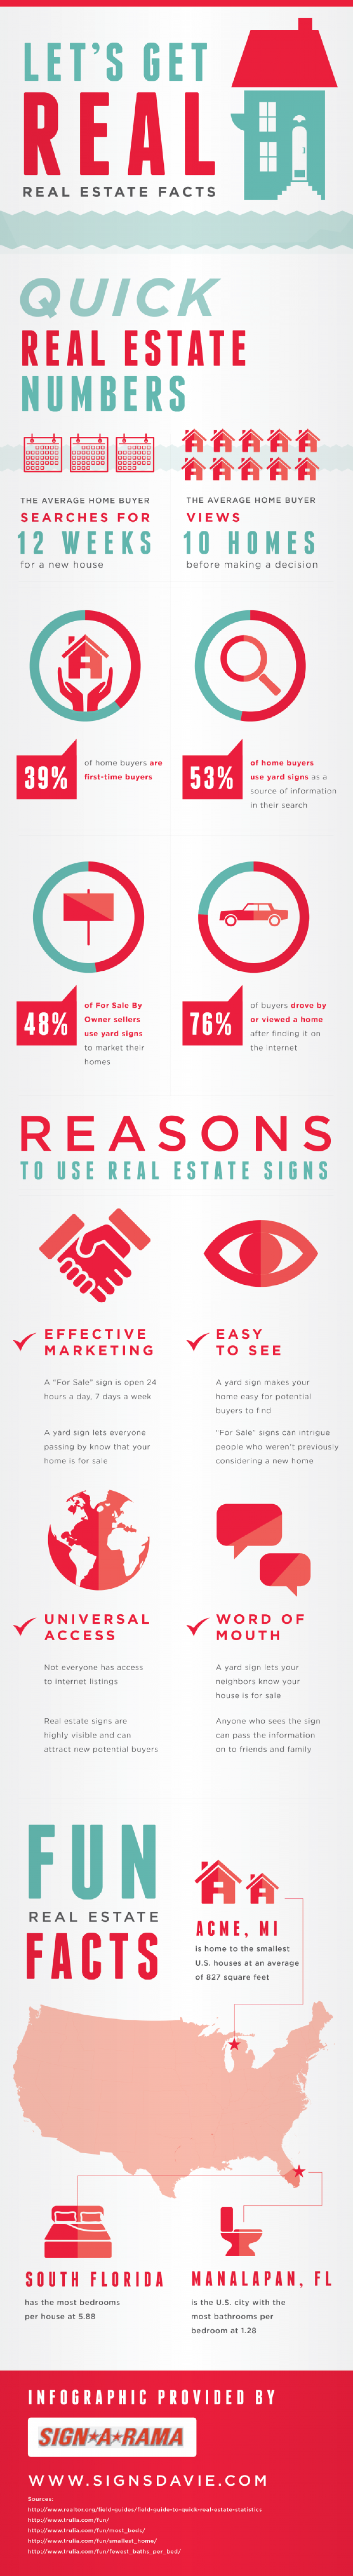 Let's Get Real: Real Estate Facts Infographic